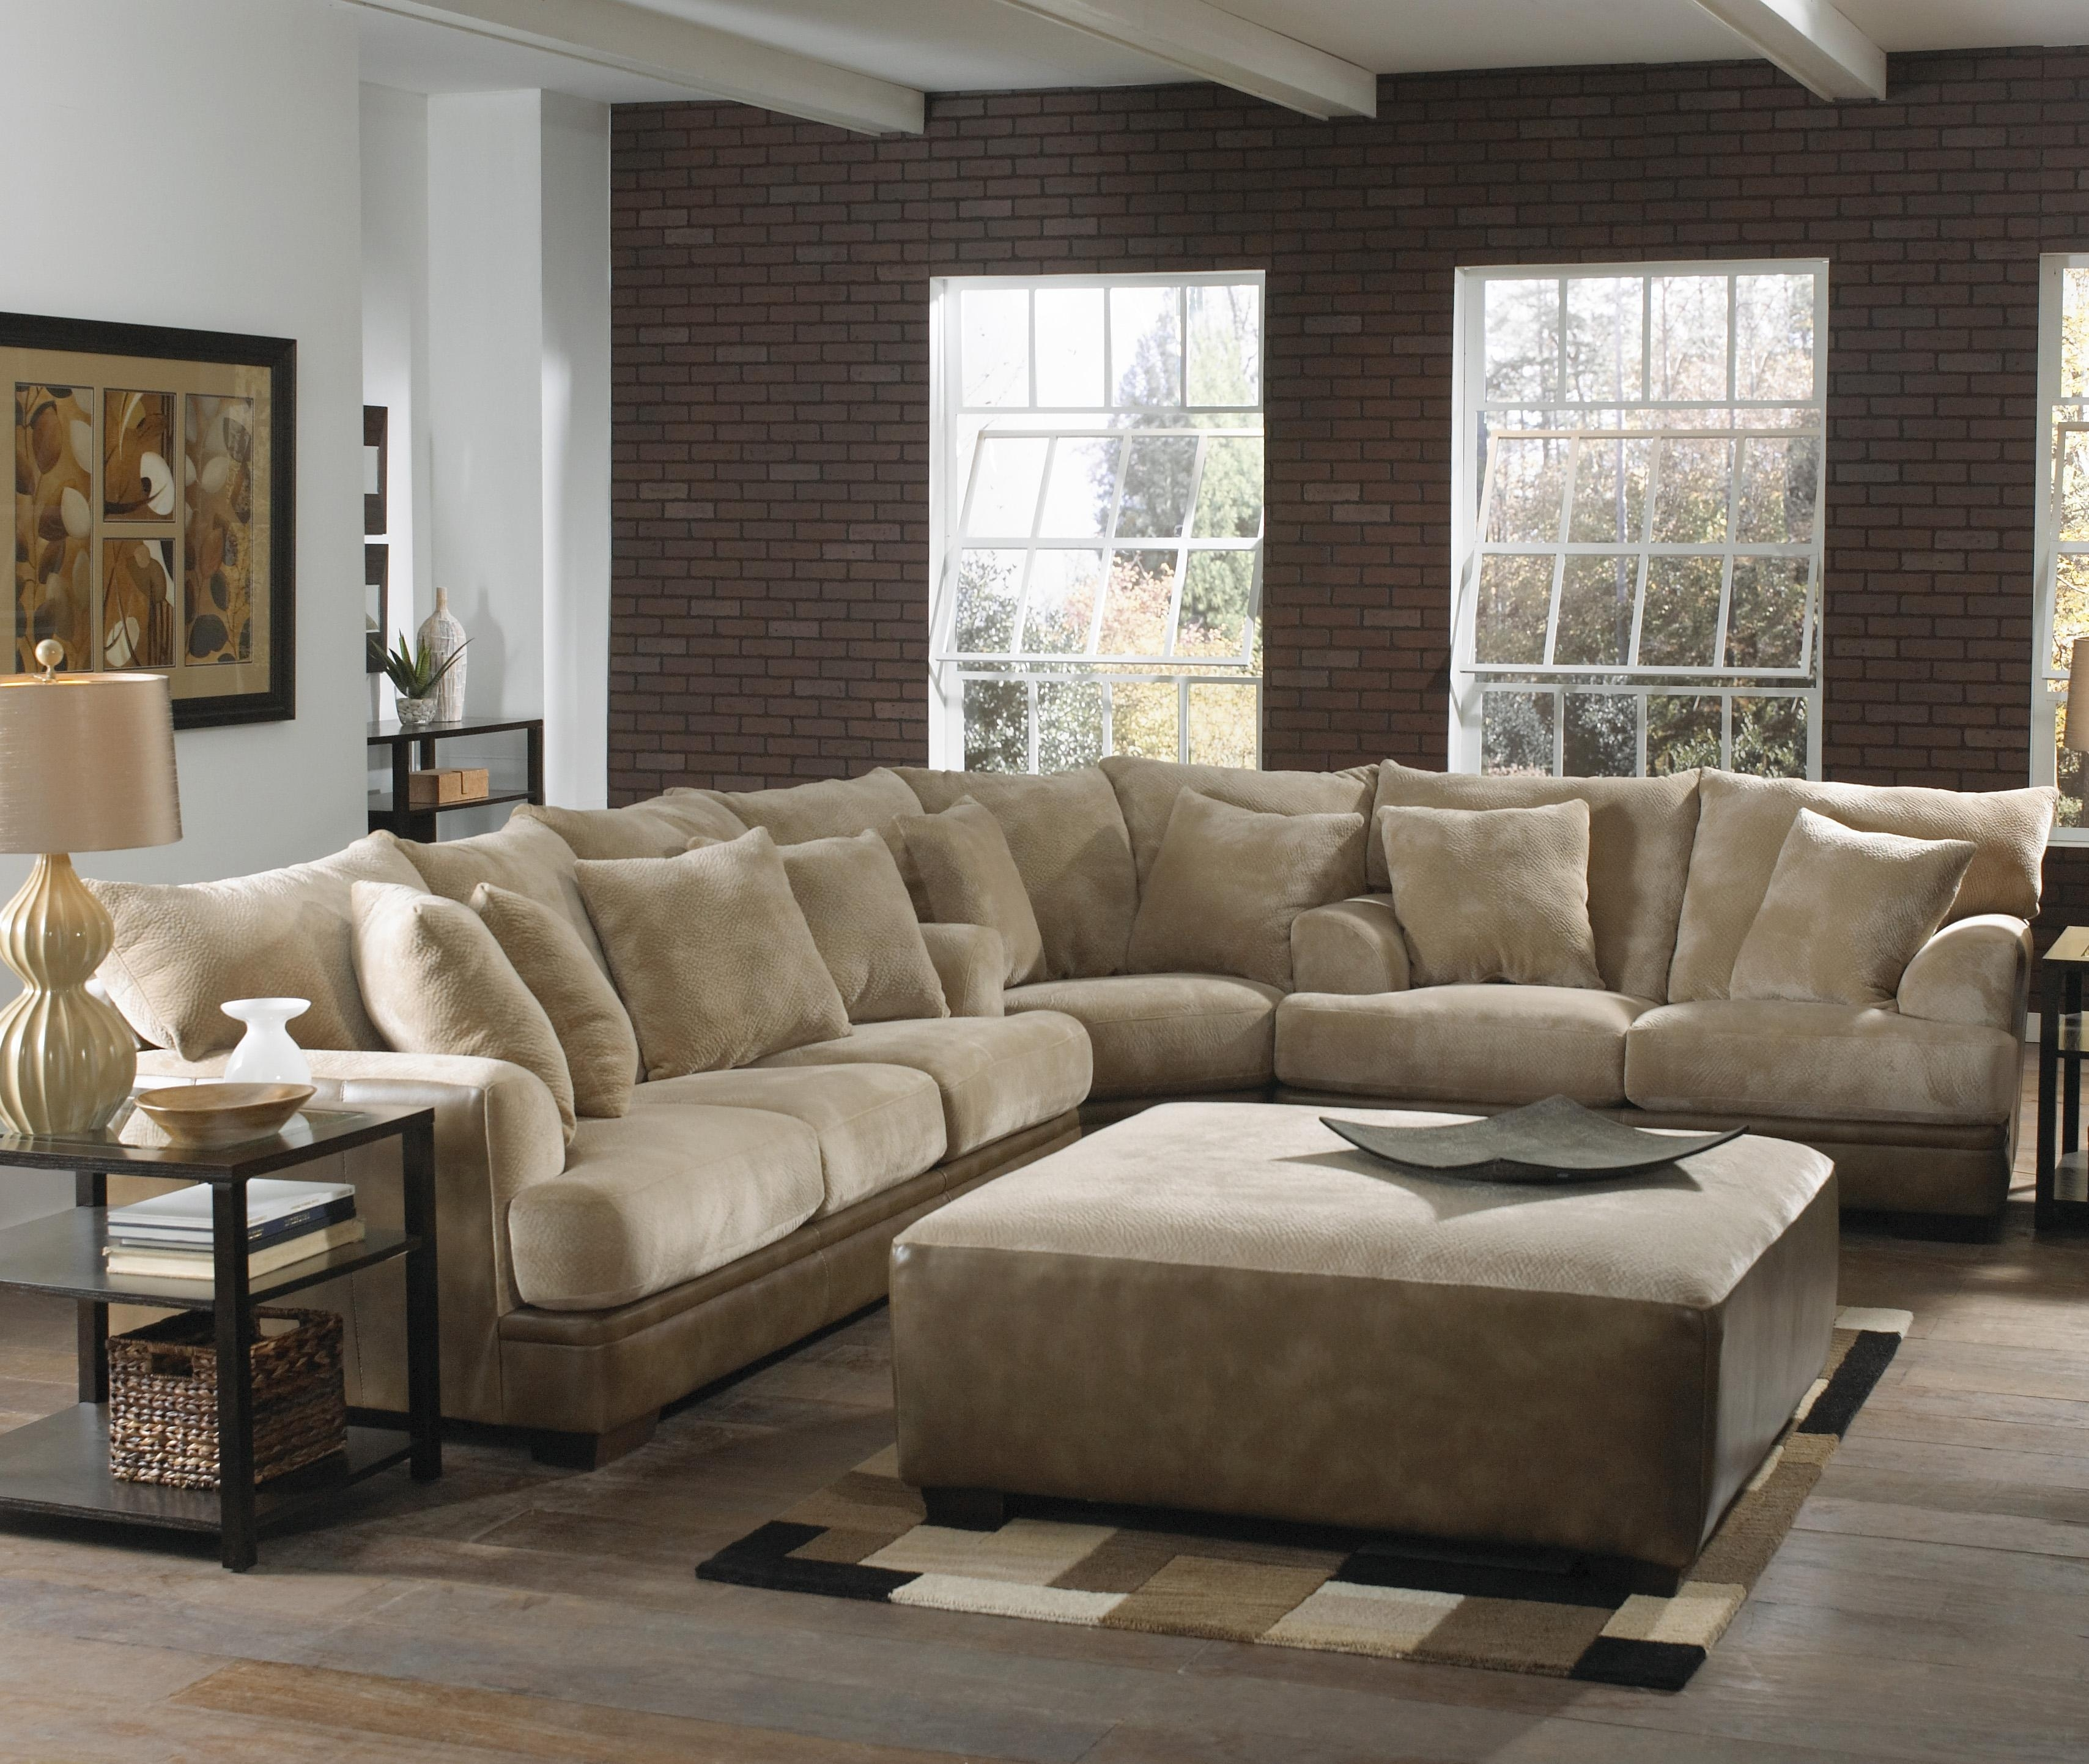 Best Of Sectional Sofas At The Brick – Sectional Sofas With Sectional Sofas At The Brick (Image 2 of 10)